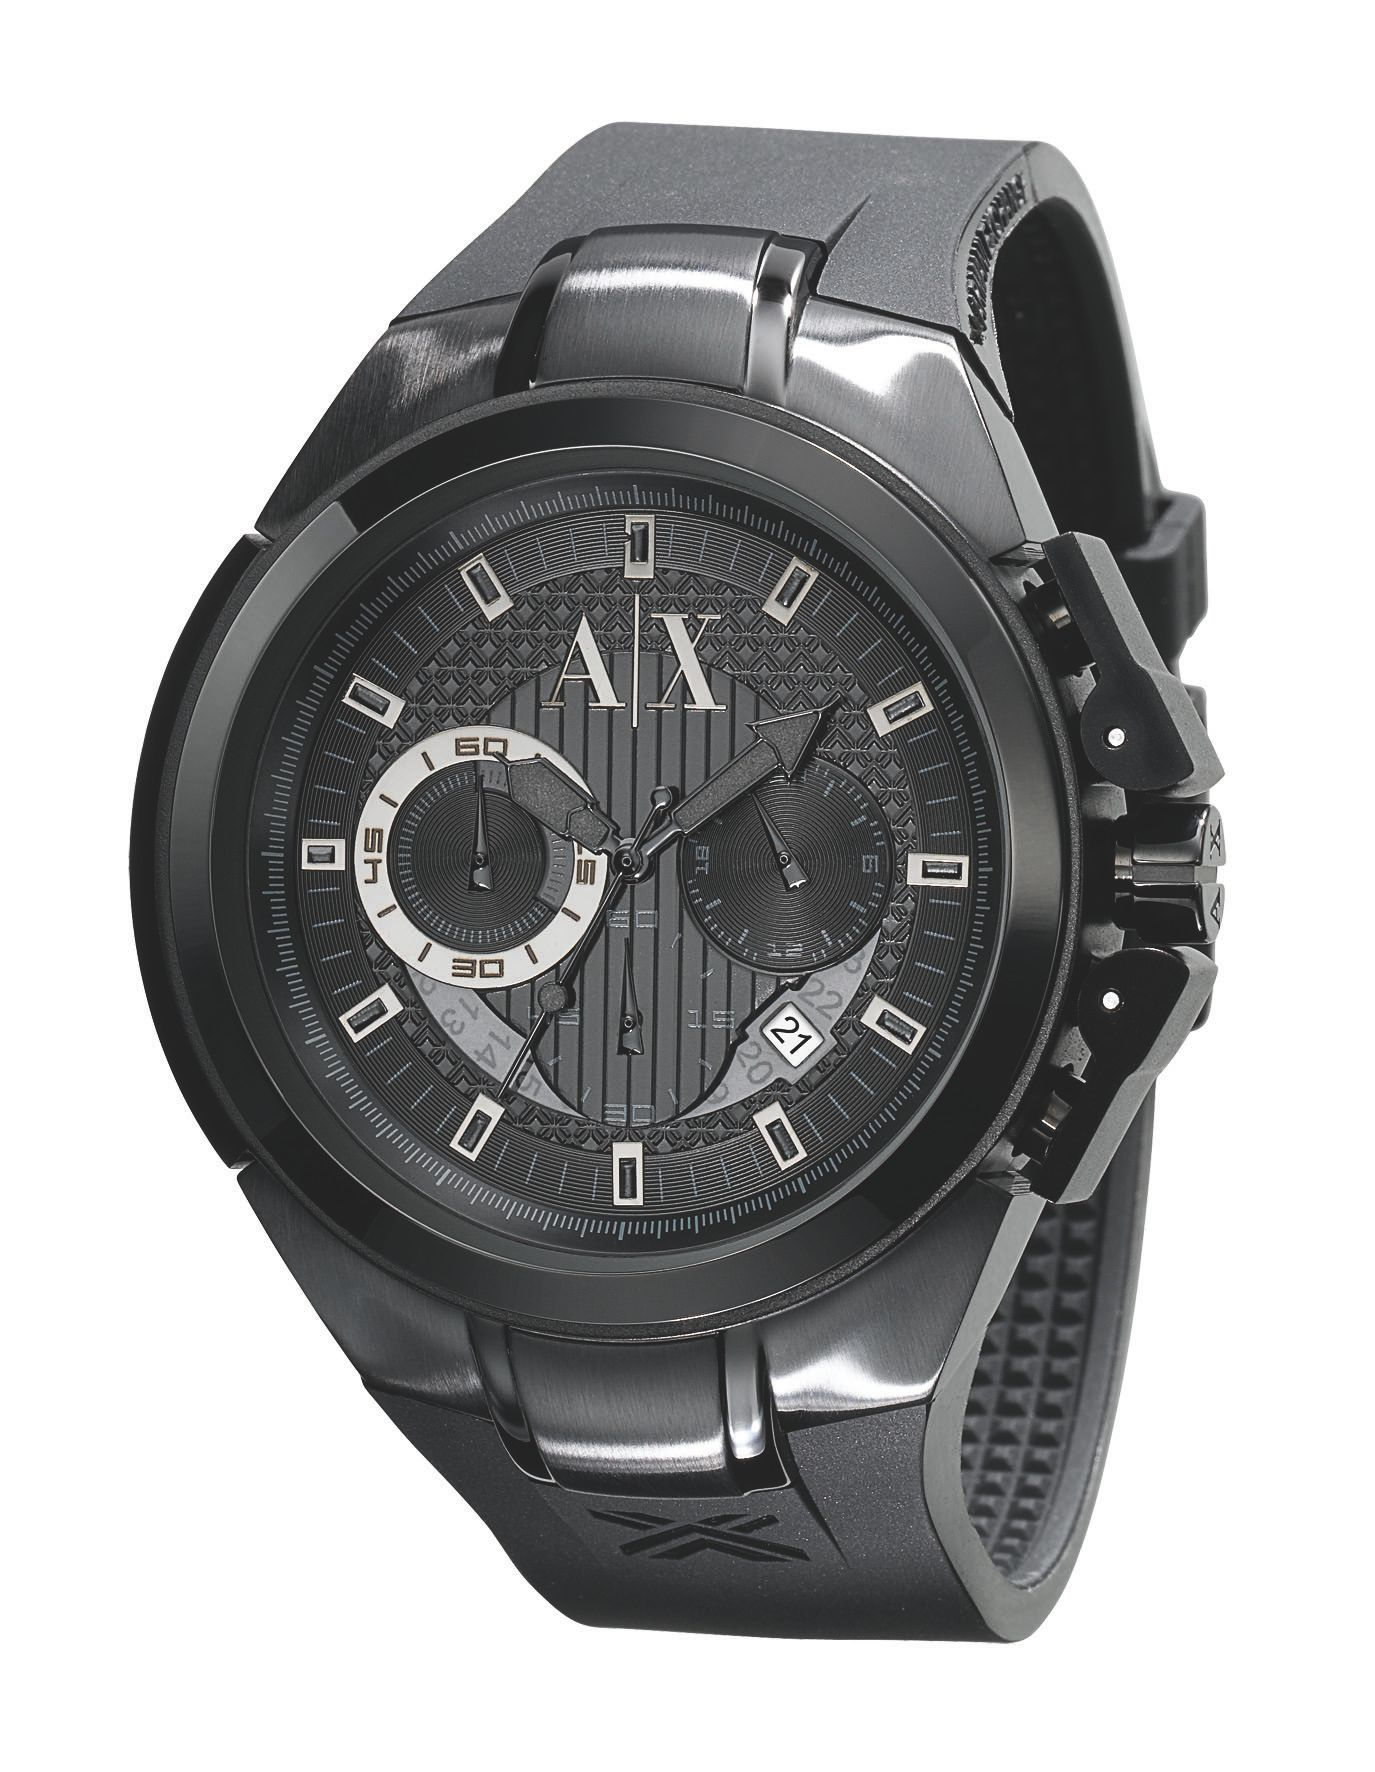 Armani Exchange AX1050 Round Dial Mens Watch, product image